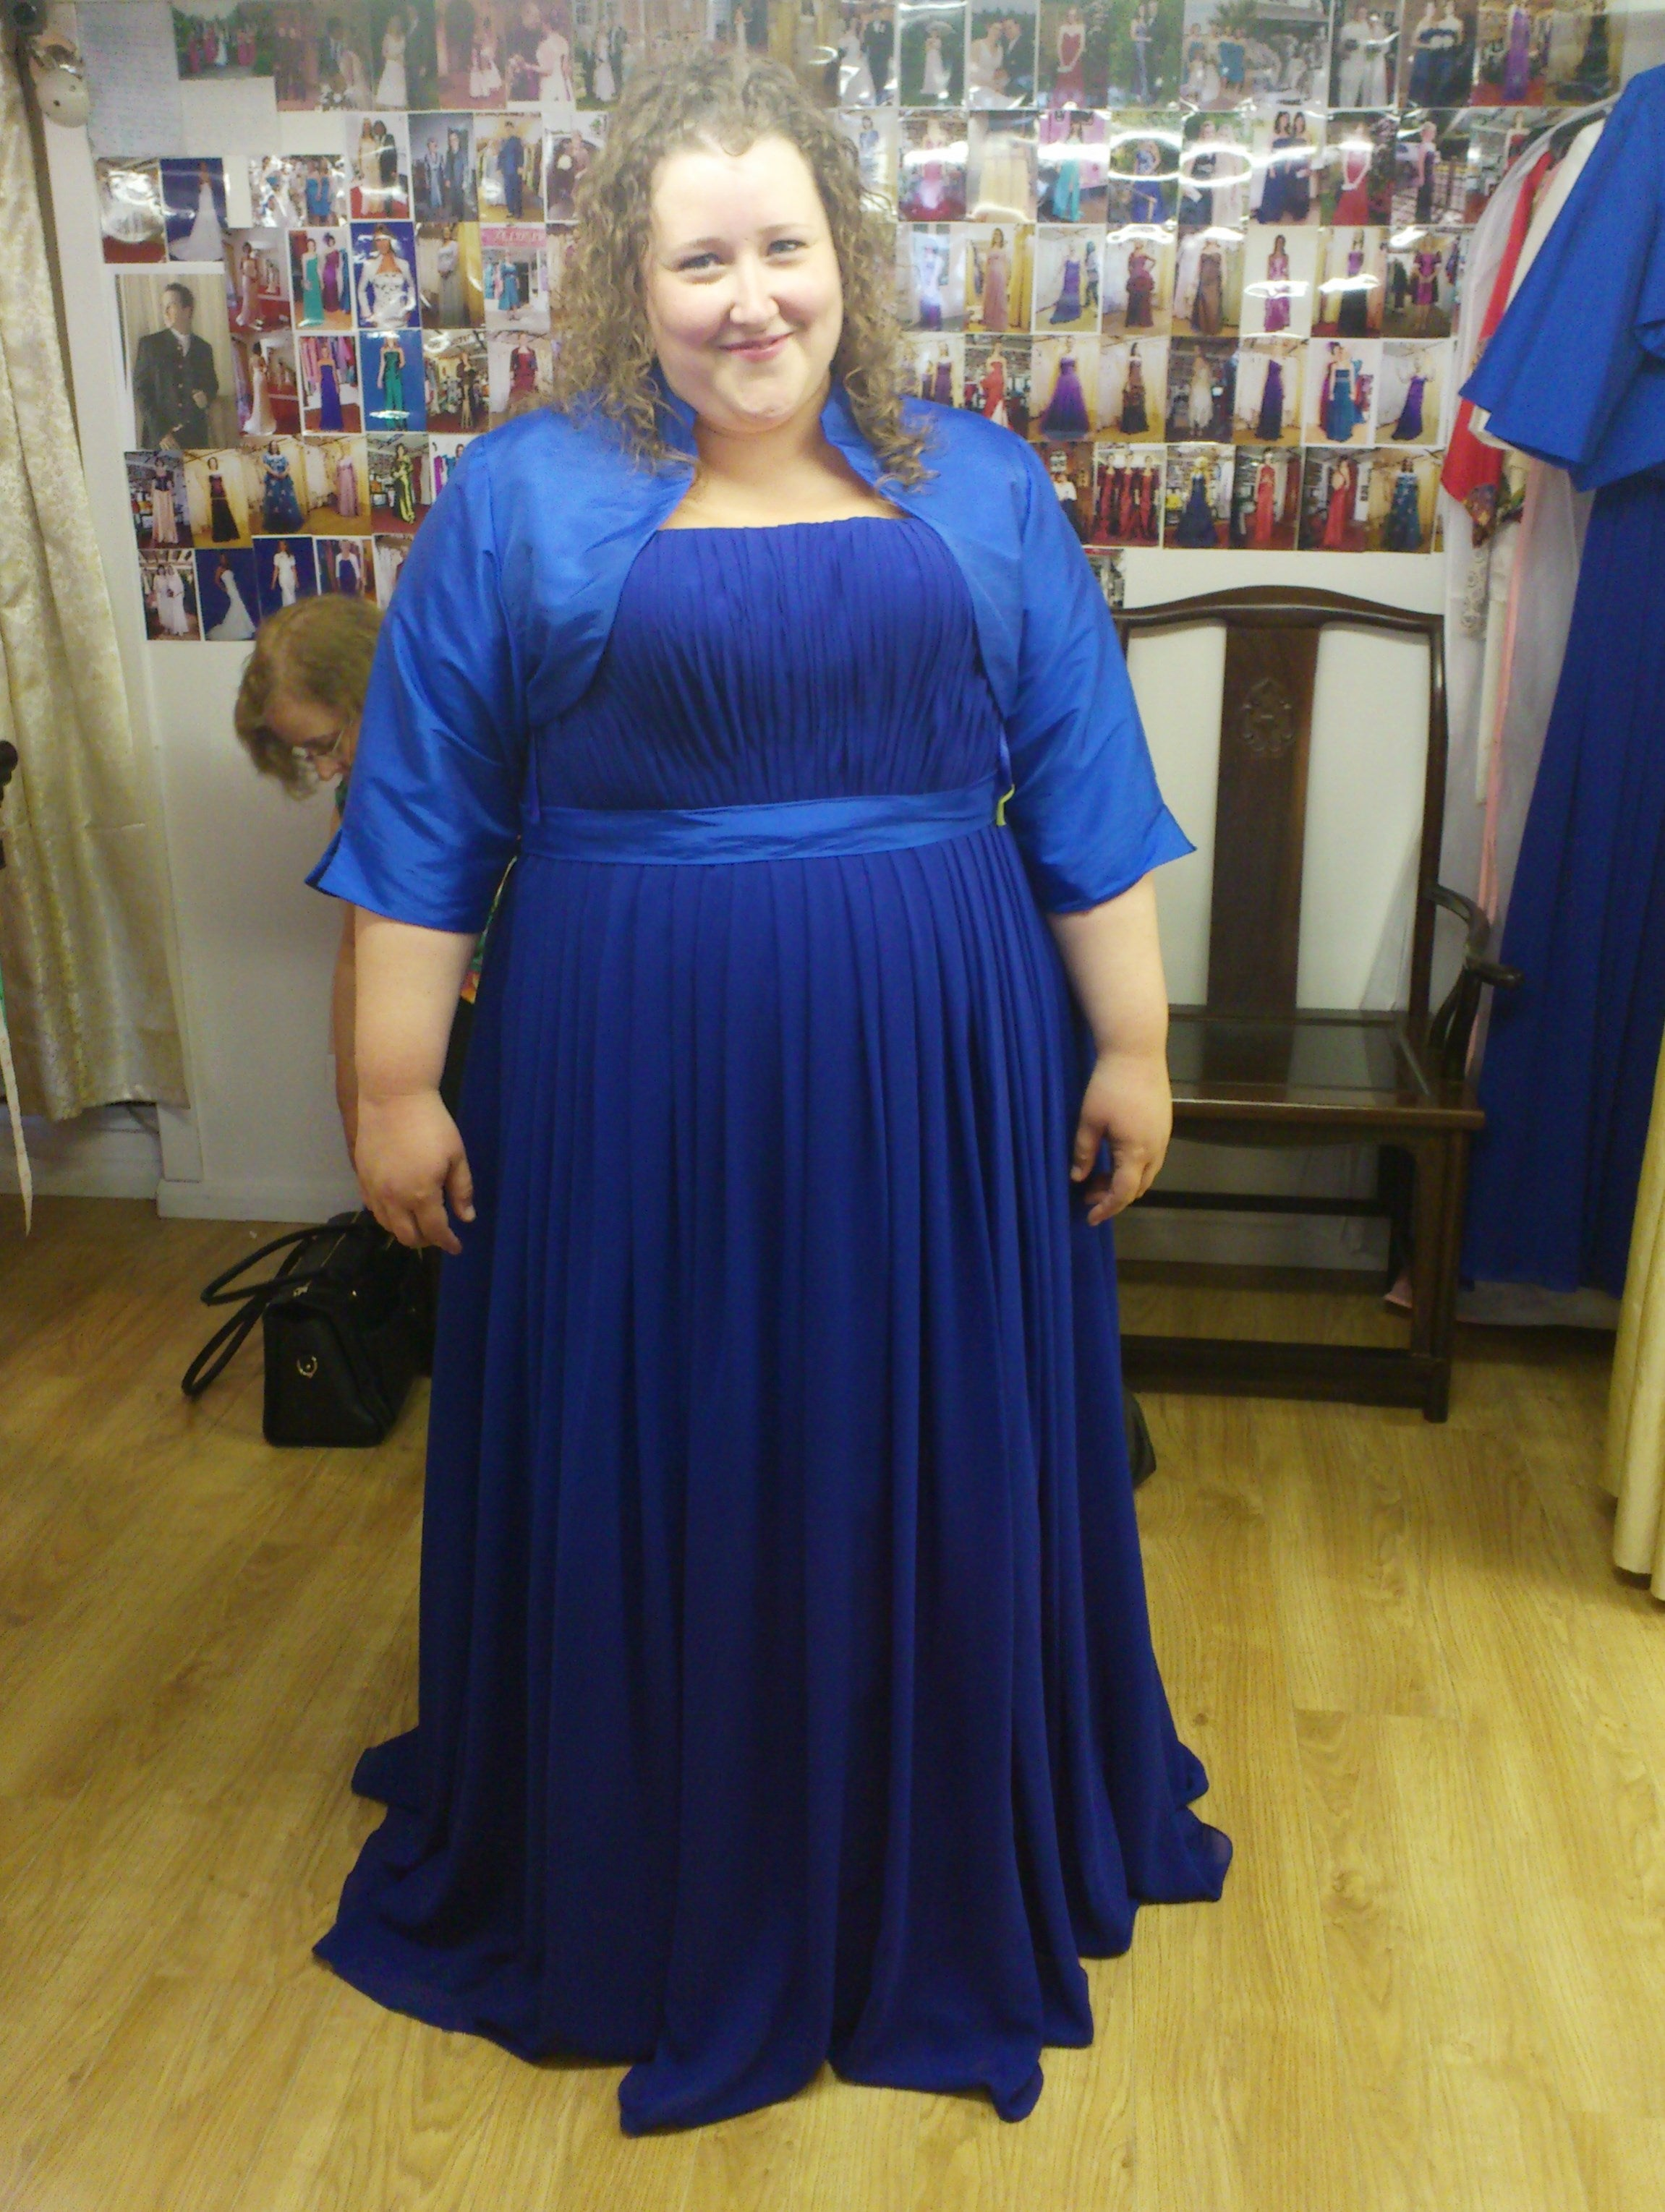 Plus size chief bridesmaid dress